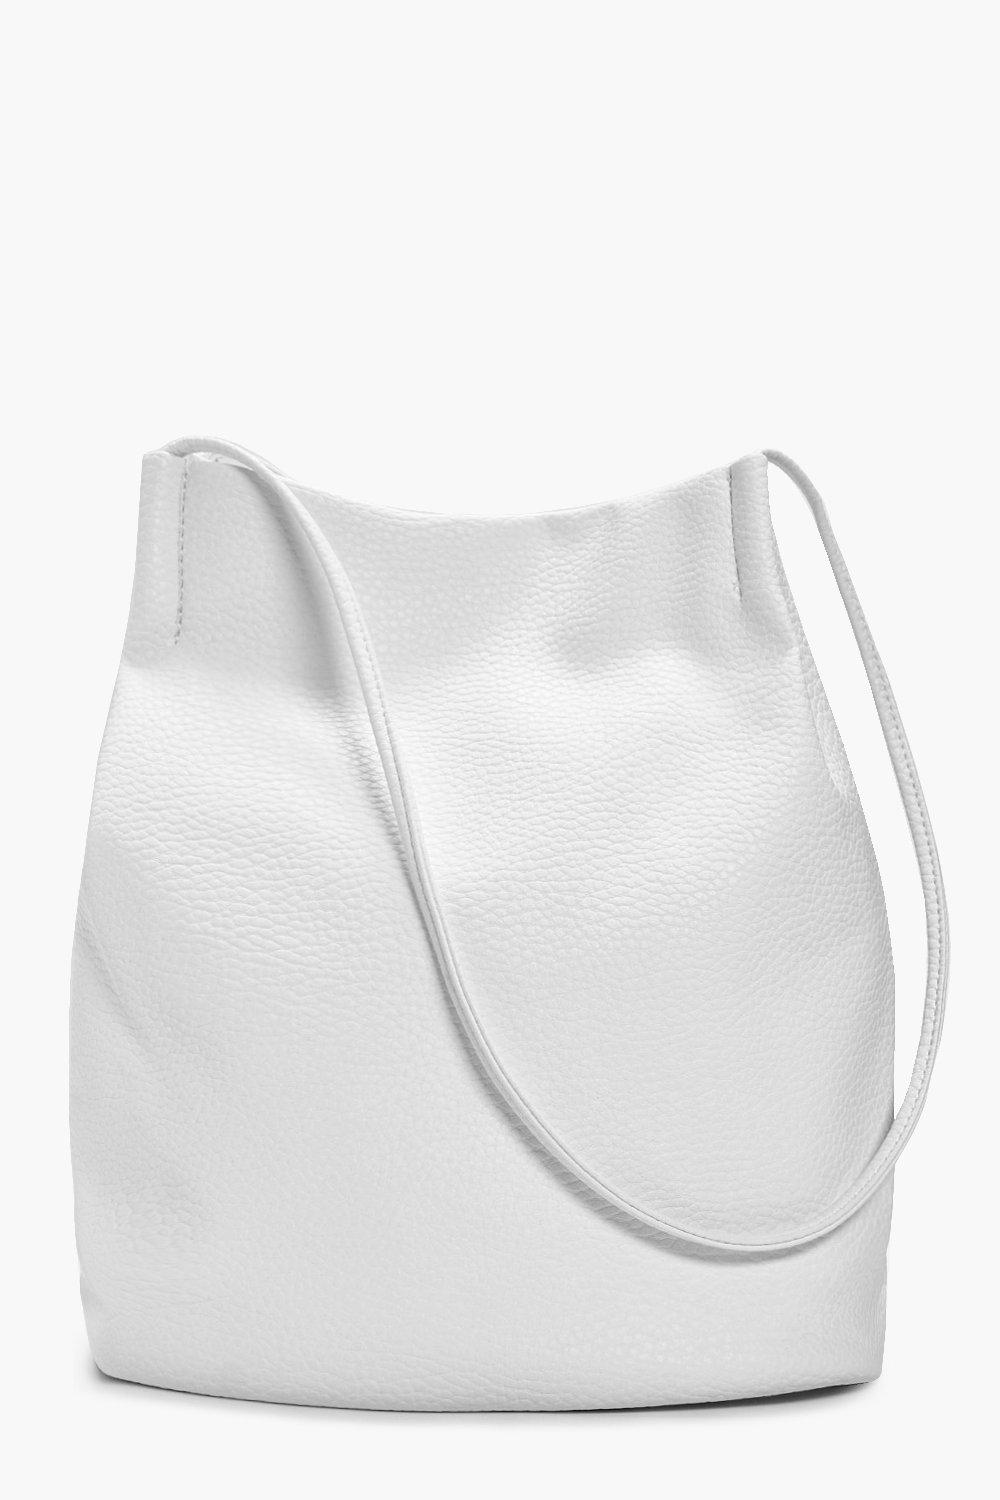 Duffle Bag Cross Body - white - Leila Duffle Bag C